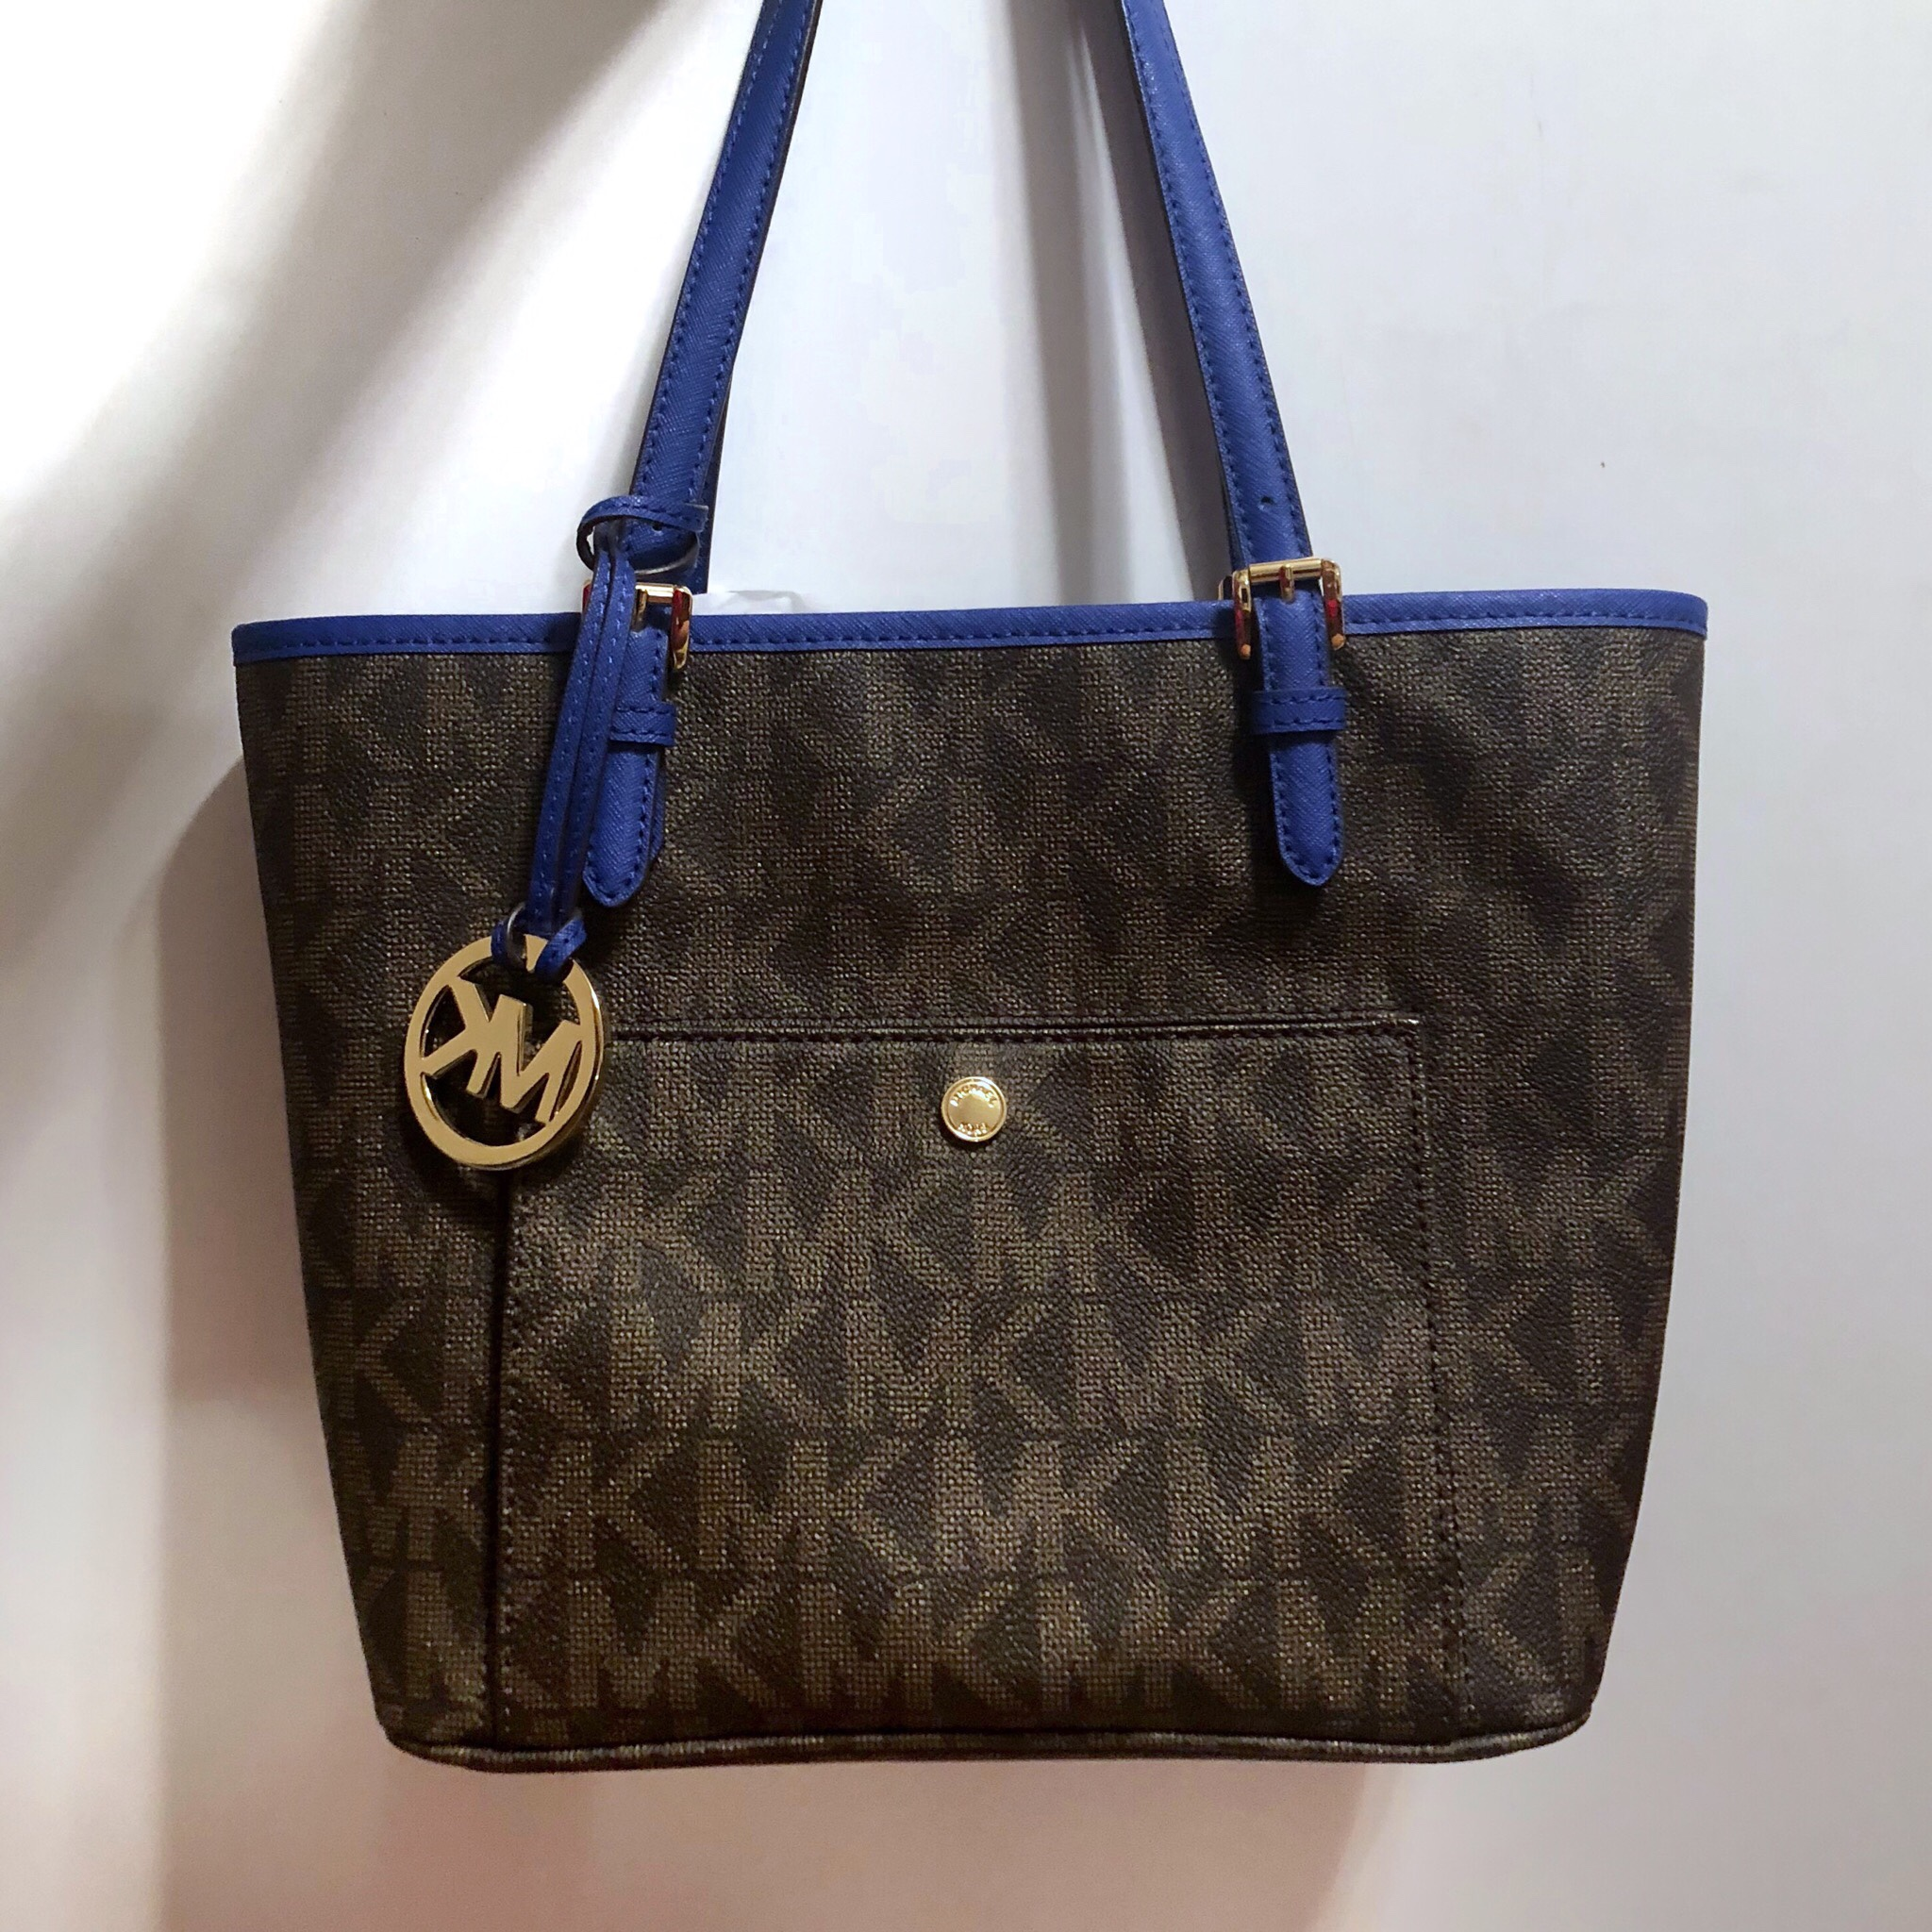 Michael Kors Monogram Royal Blue Accent Jet Set Tote